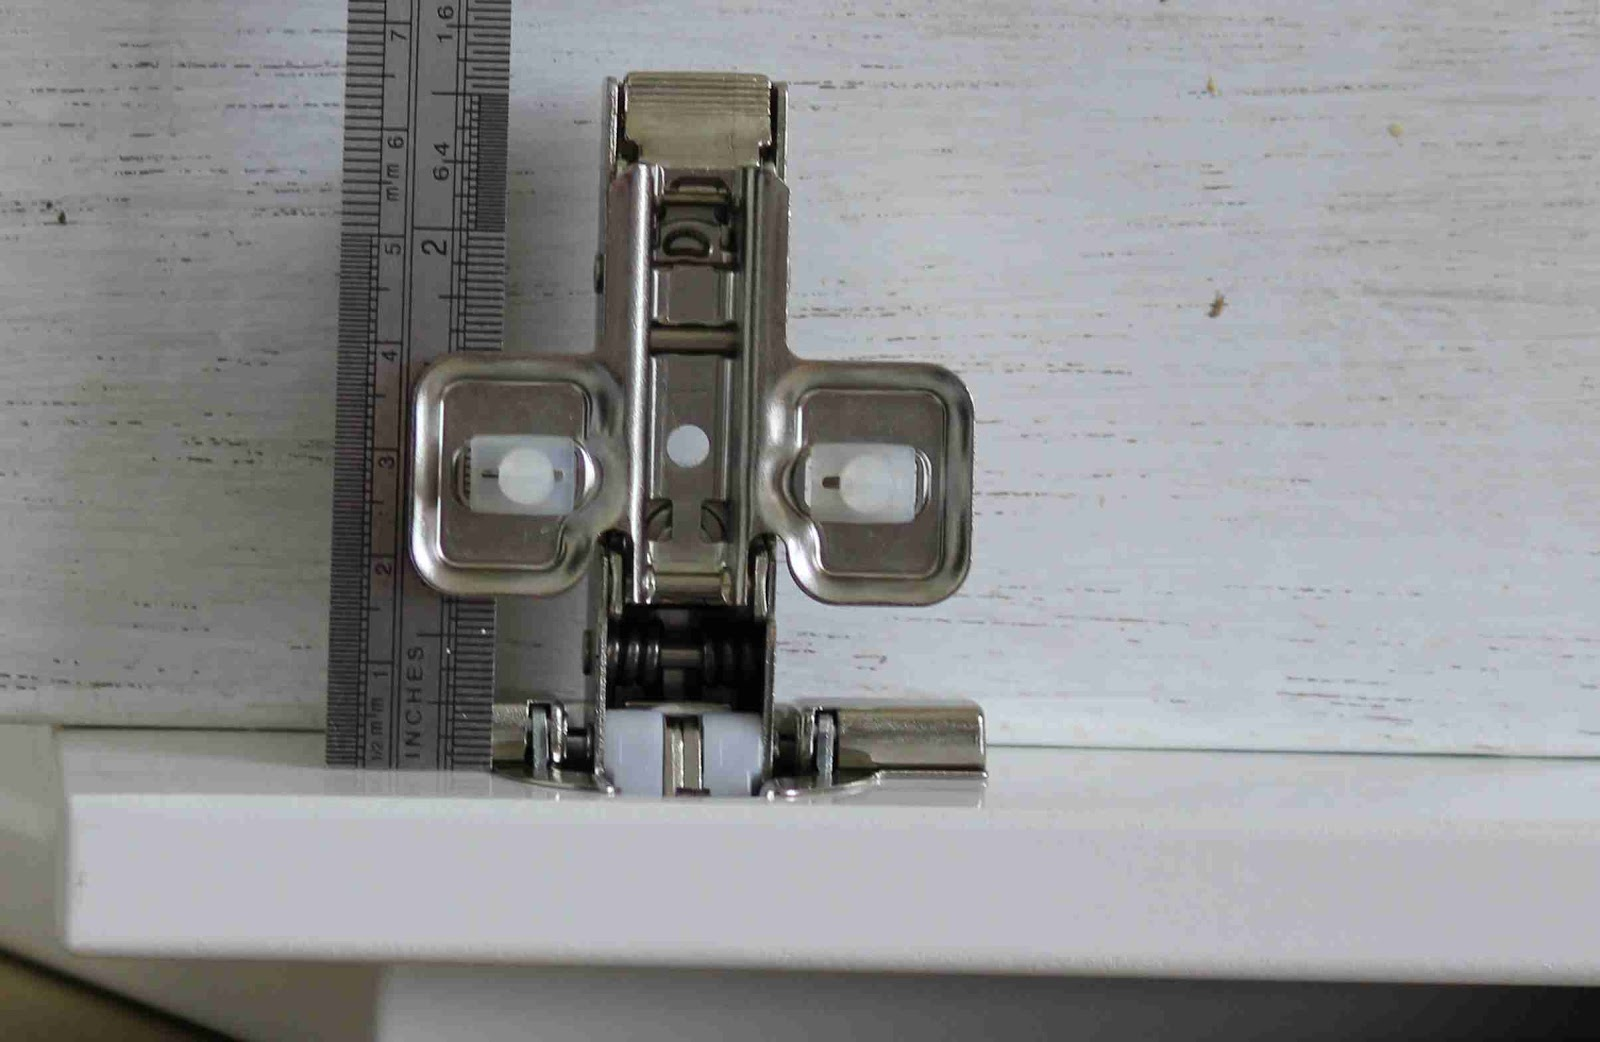 Blog De Vk5hse Ikea Mounting Hole Dimensions In Case You Need To